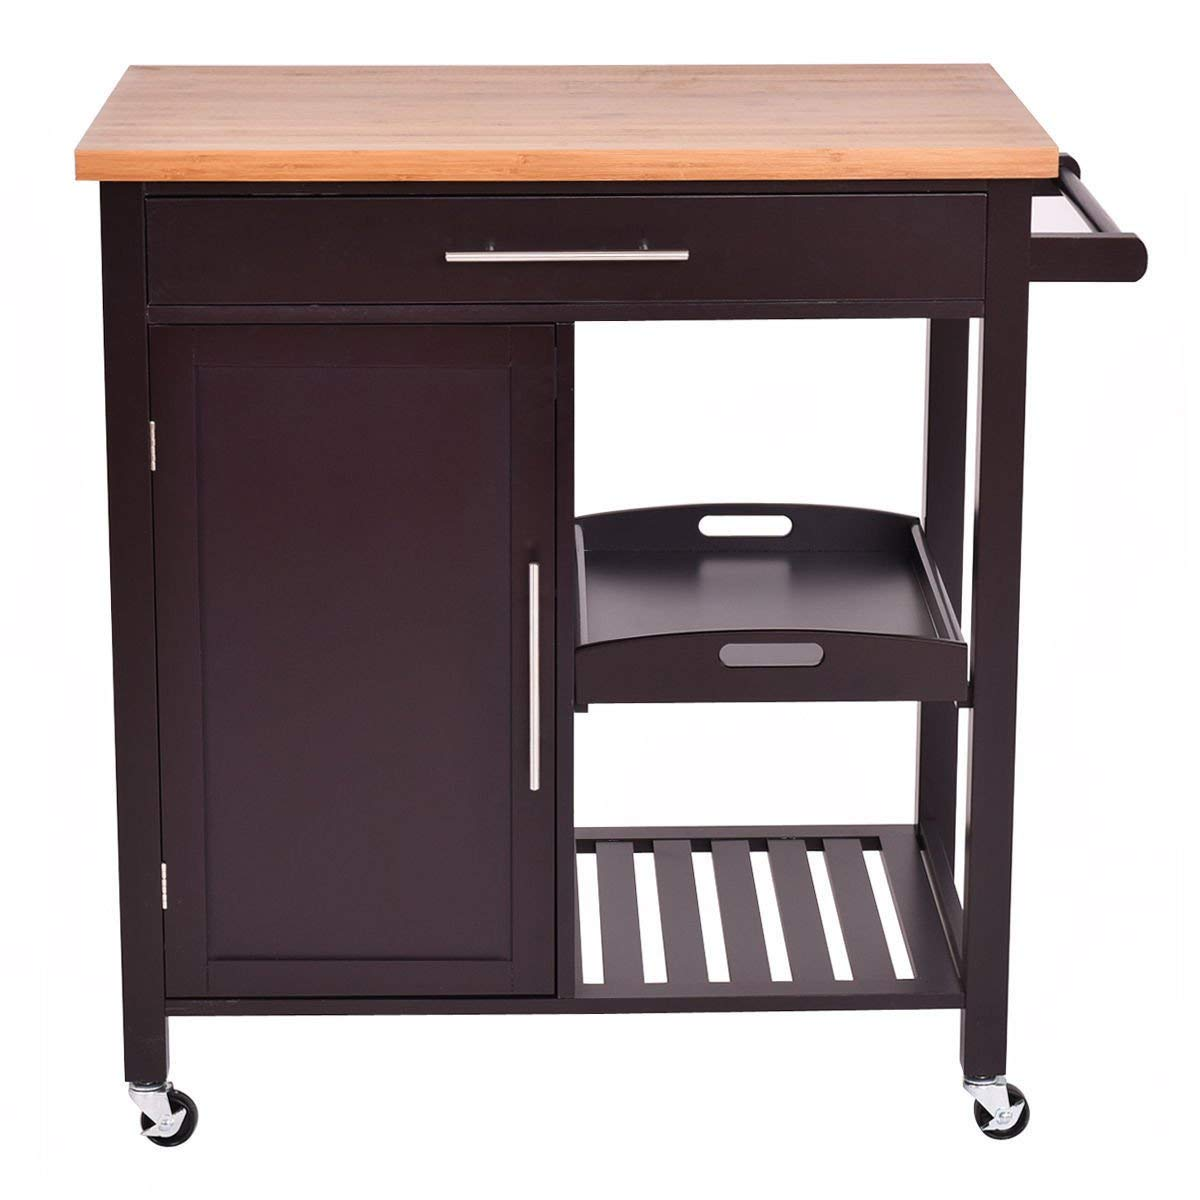 Get Quotations · Rolling Wood Kitchen Island Trolley Cart Bamboo Top  Storage Cabinet Utility